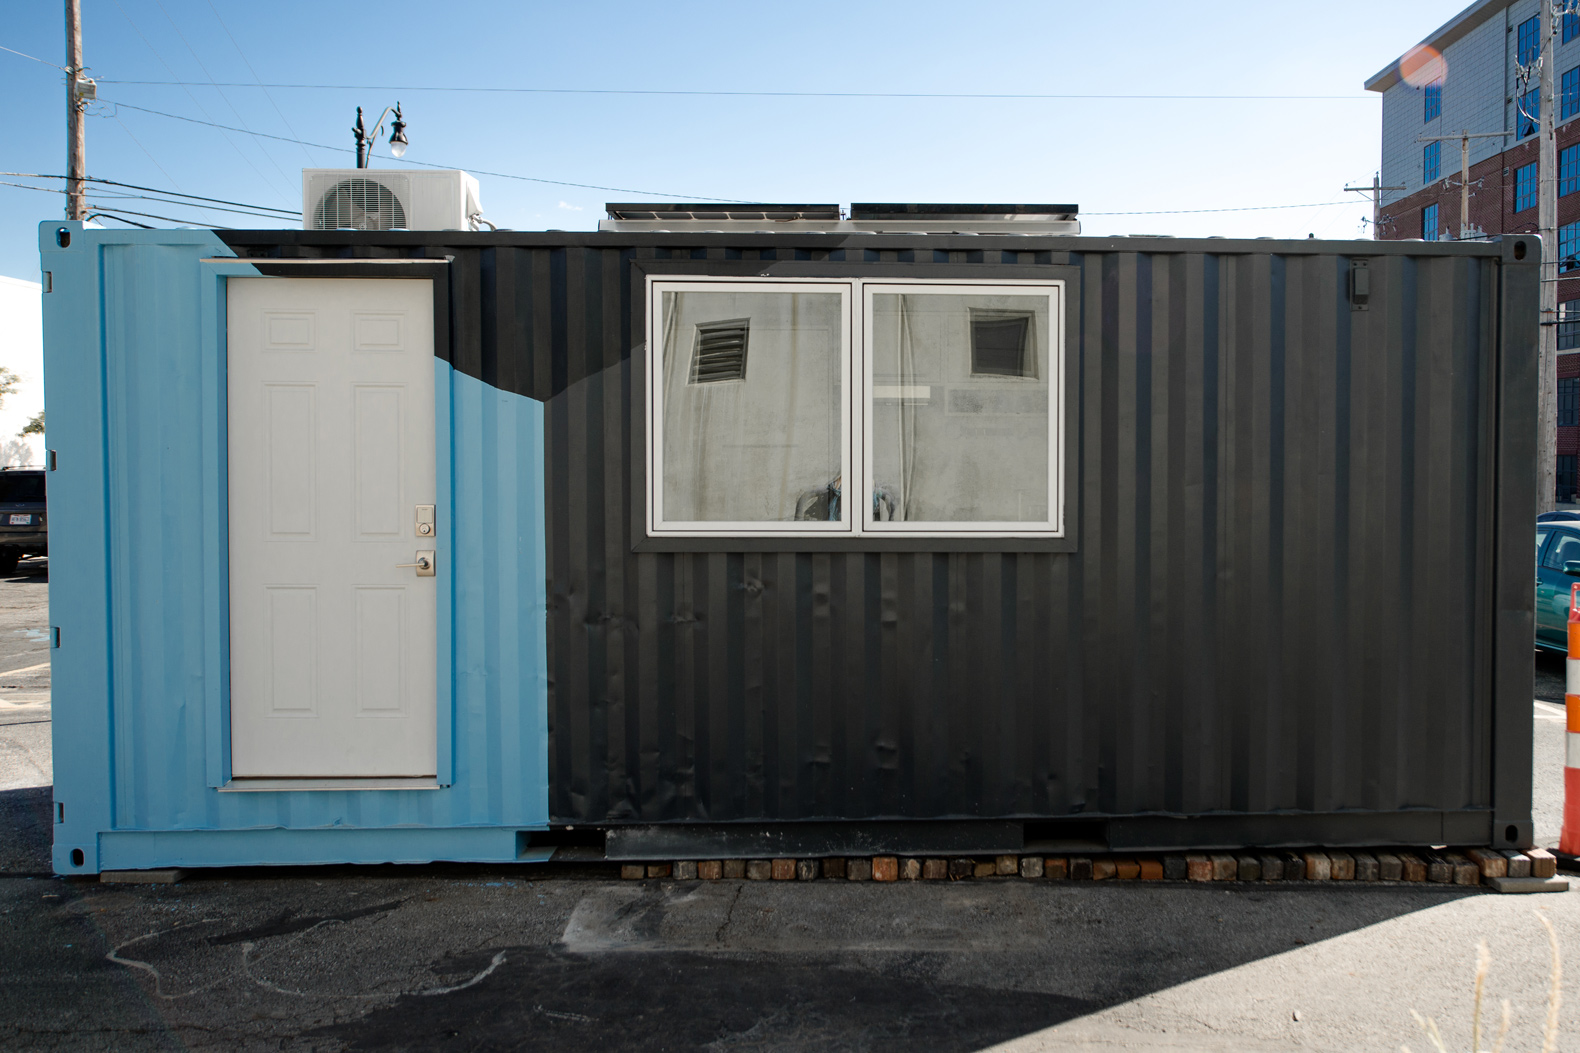 This tiny shipping container home adapts to your needs